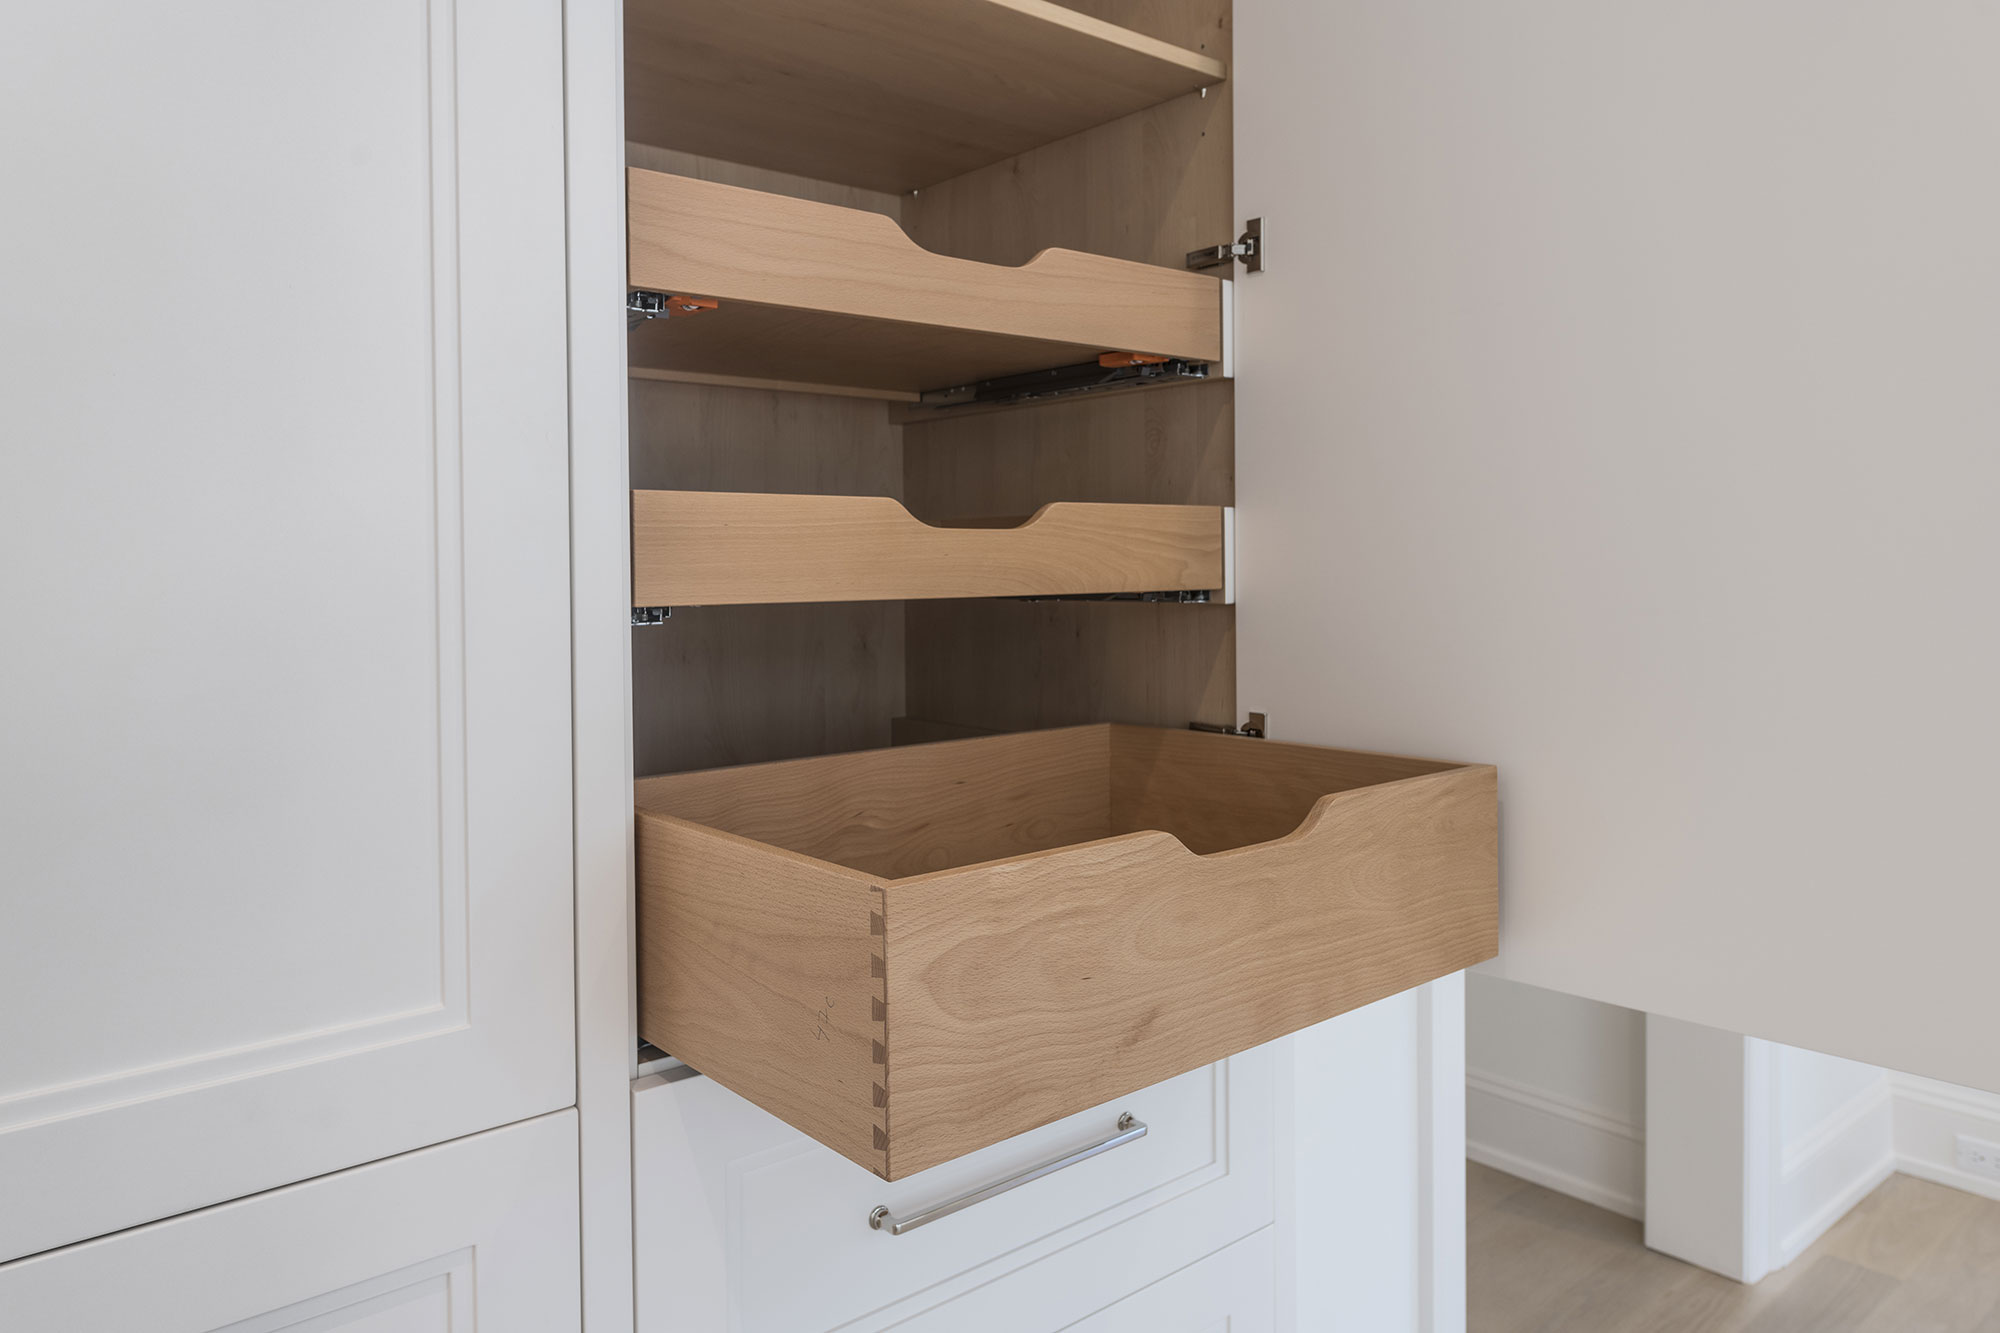 Kitchen Cabinets Drawers New Custom Homes Globex Developments